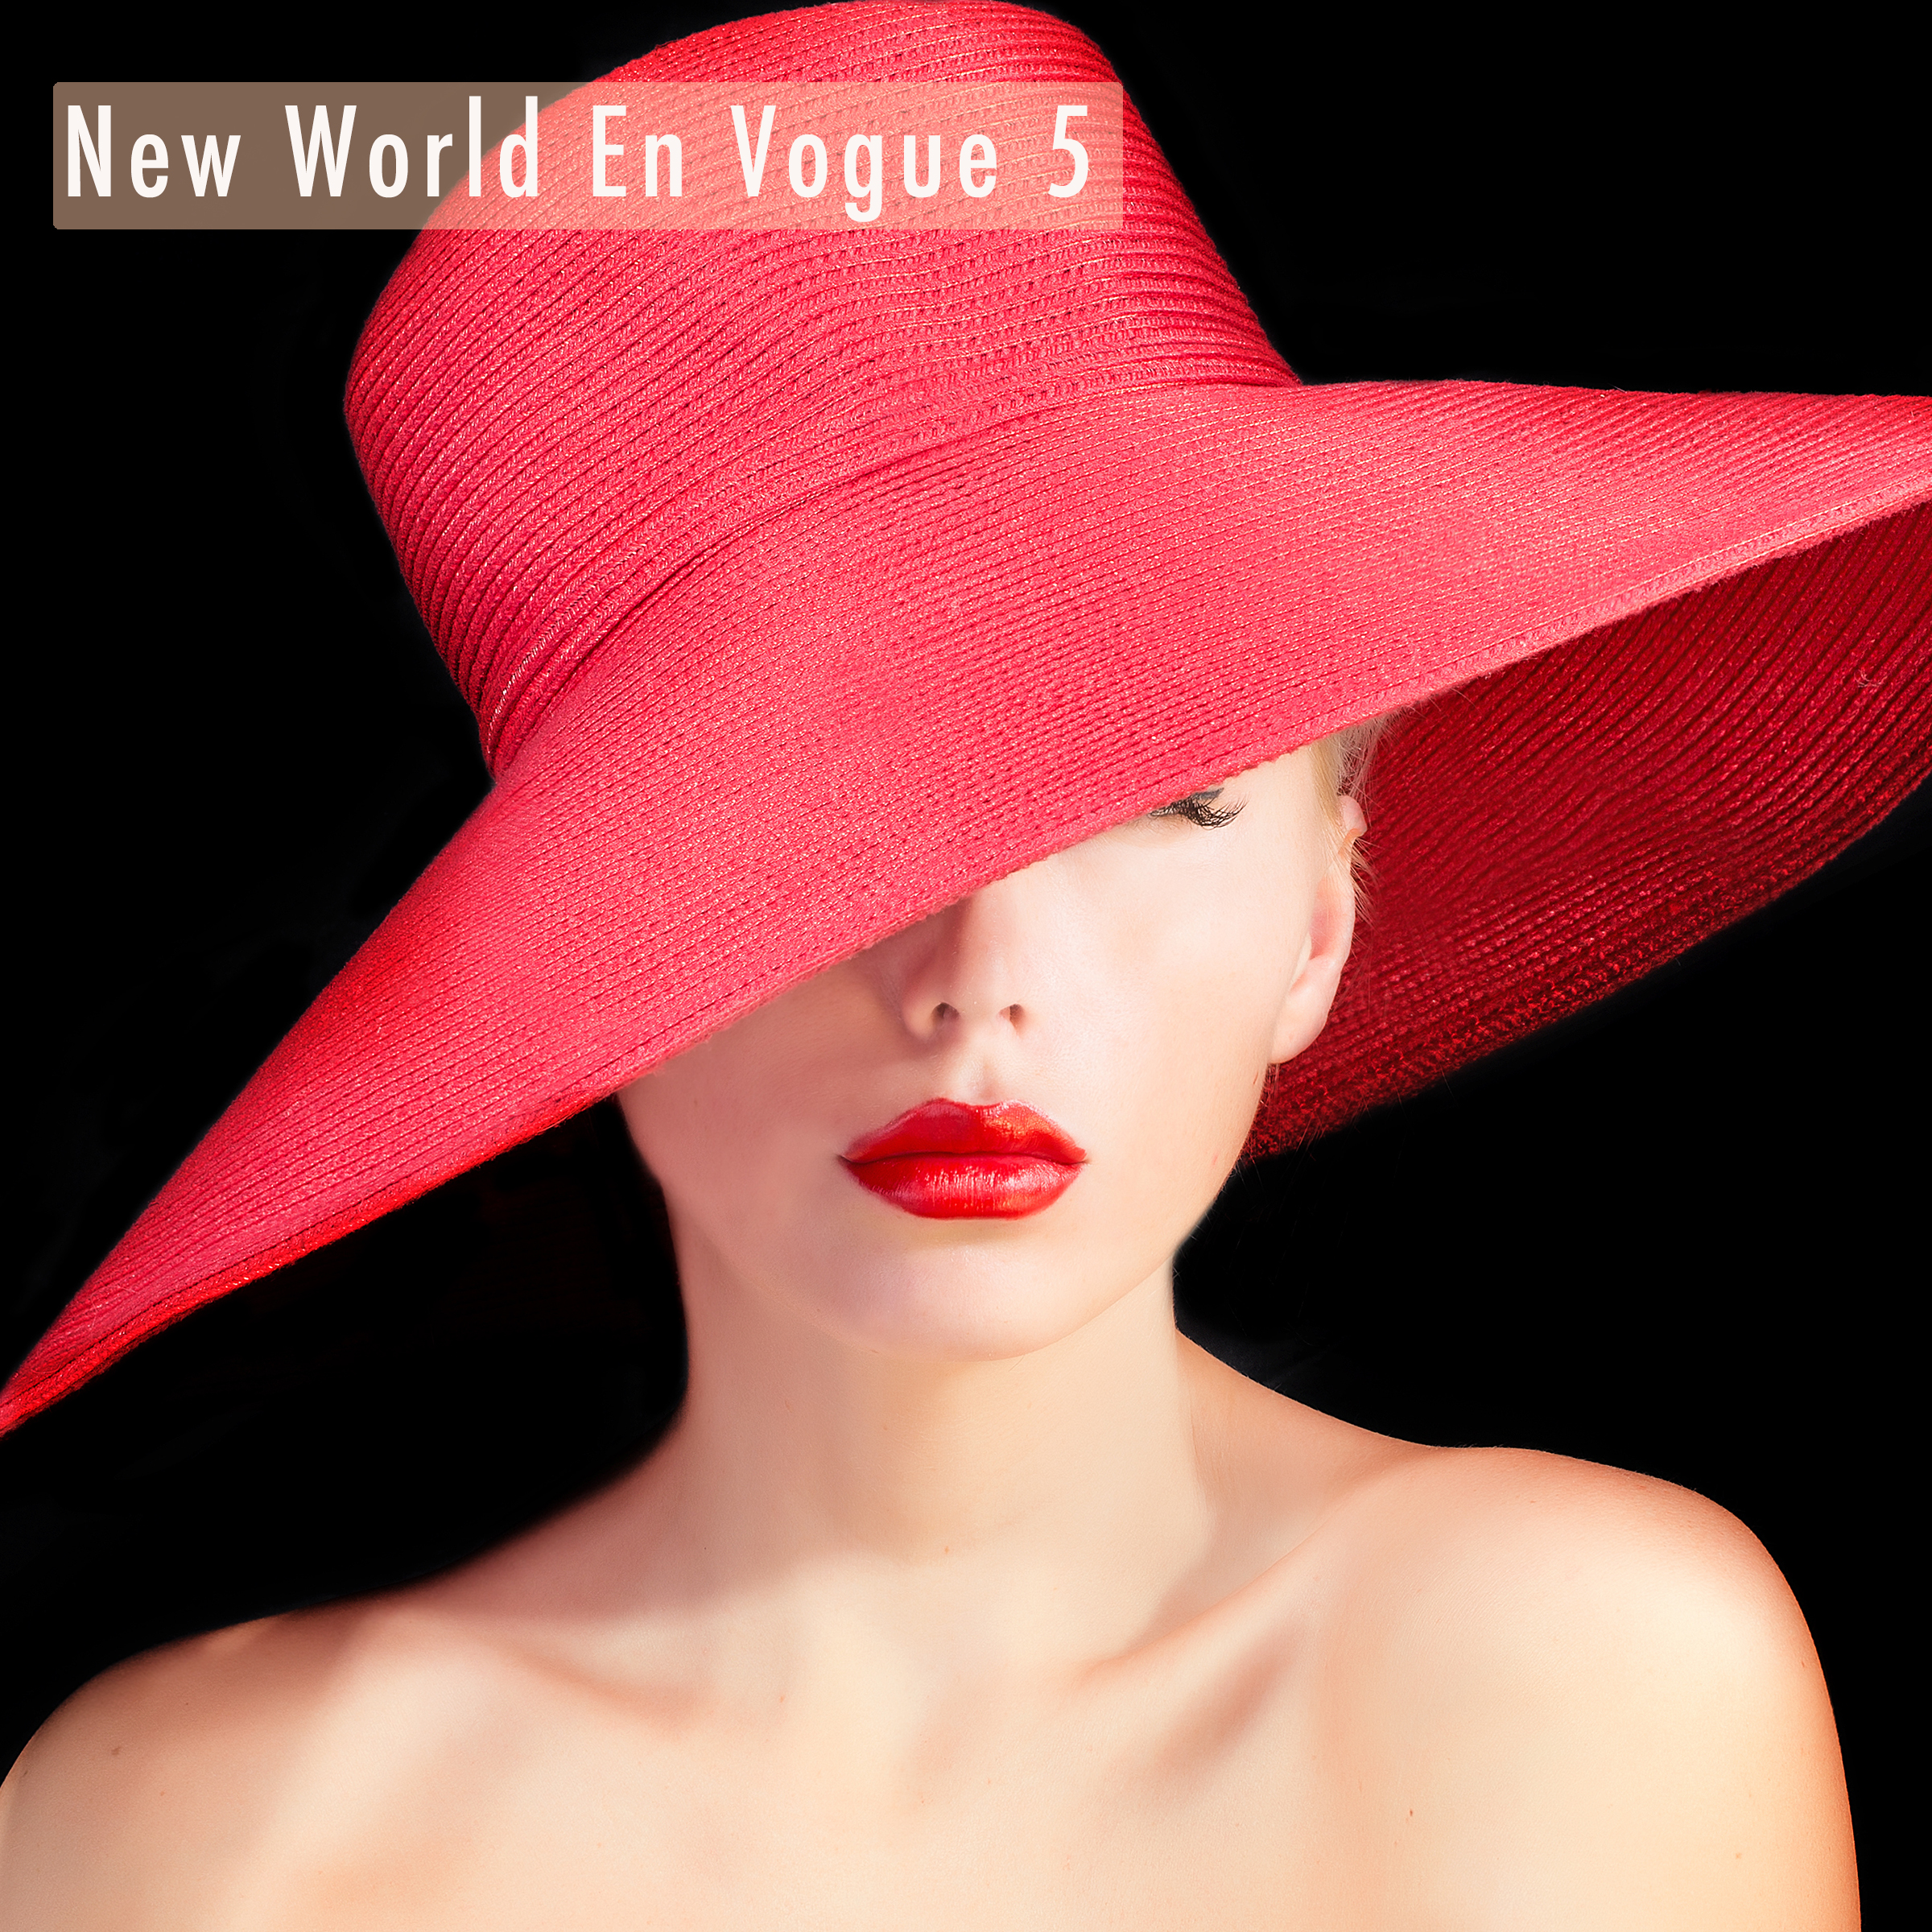 New World En Vogue 5